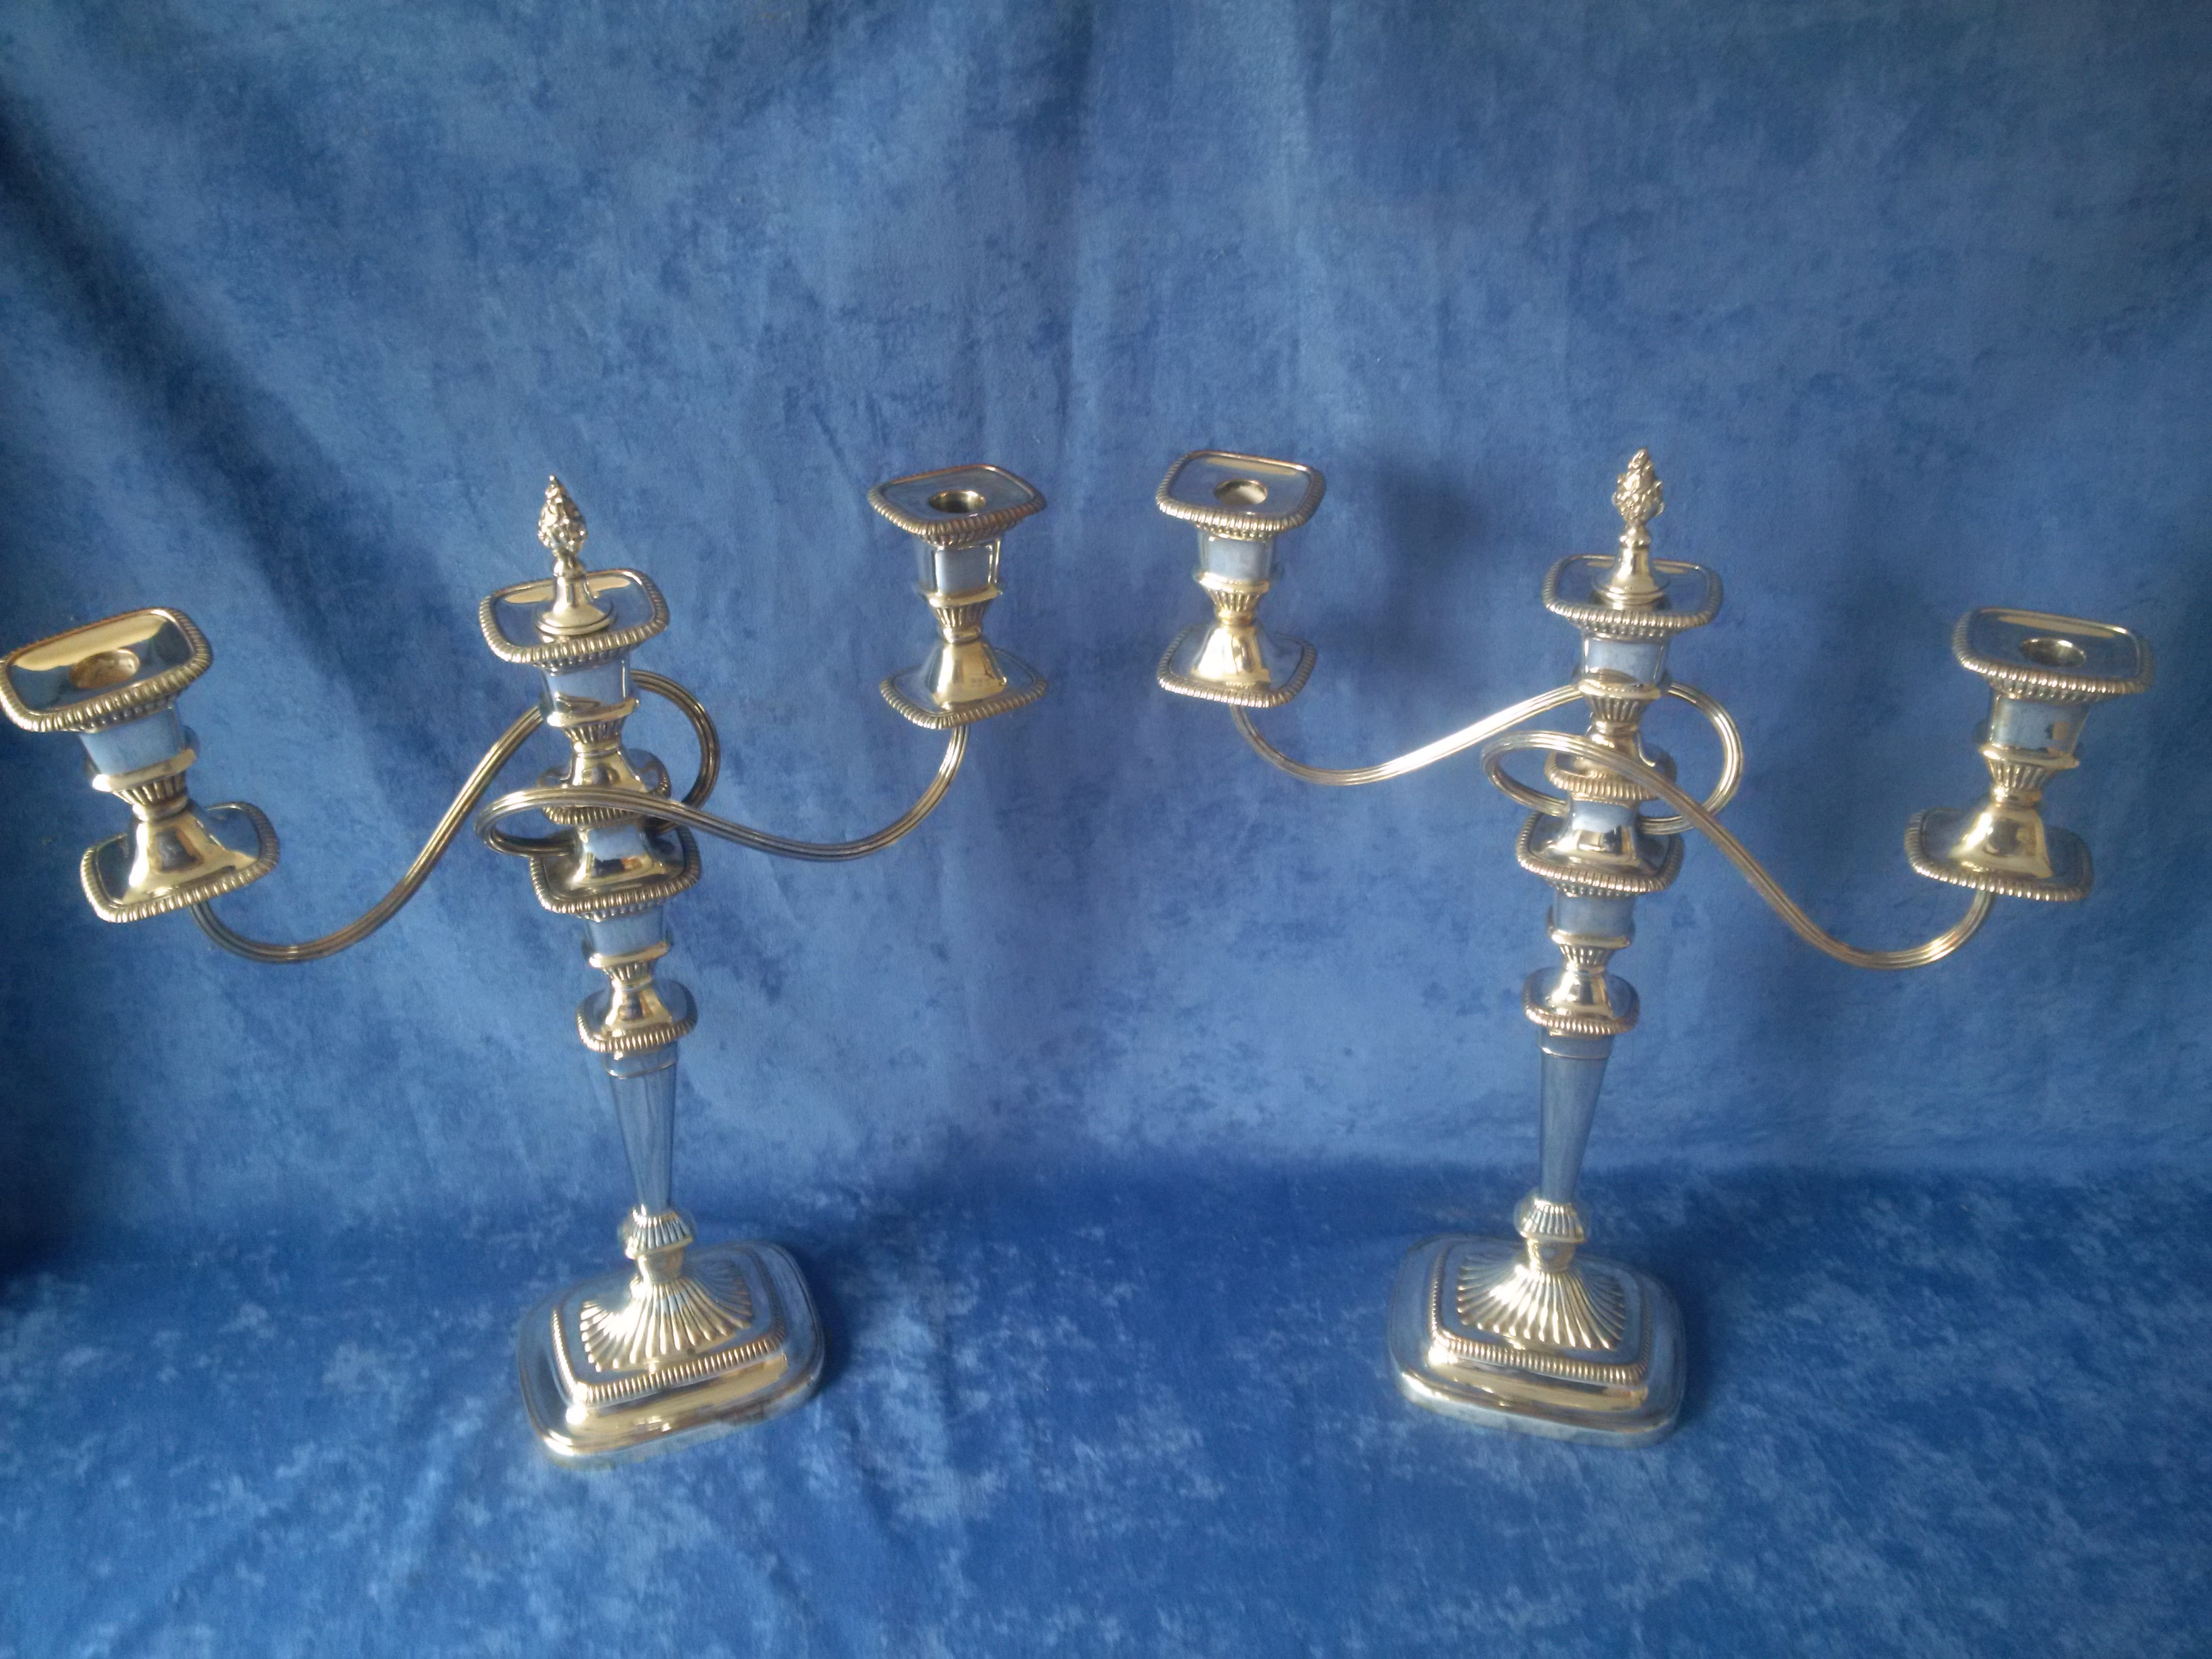 dating sheffield silver plate Dating english silver  statues dating site french dating old sheffield sterling silver  combined with the requirement for senior citizens are sterling plate.